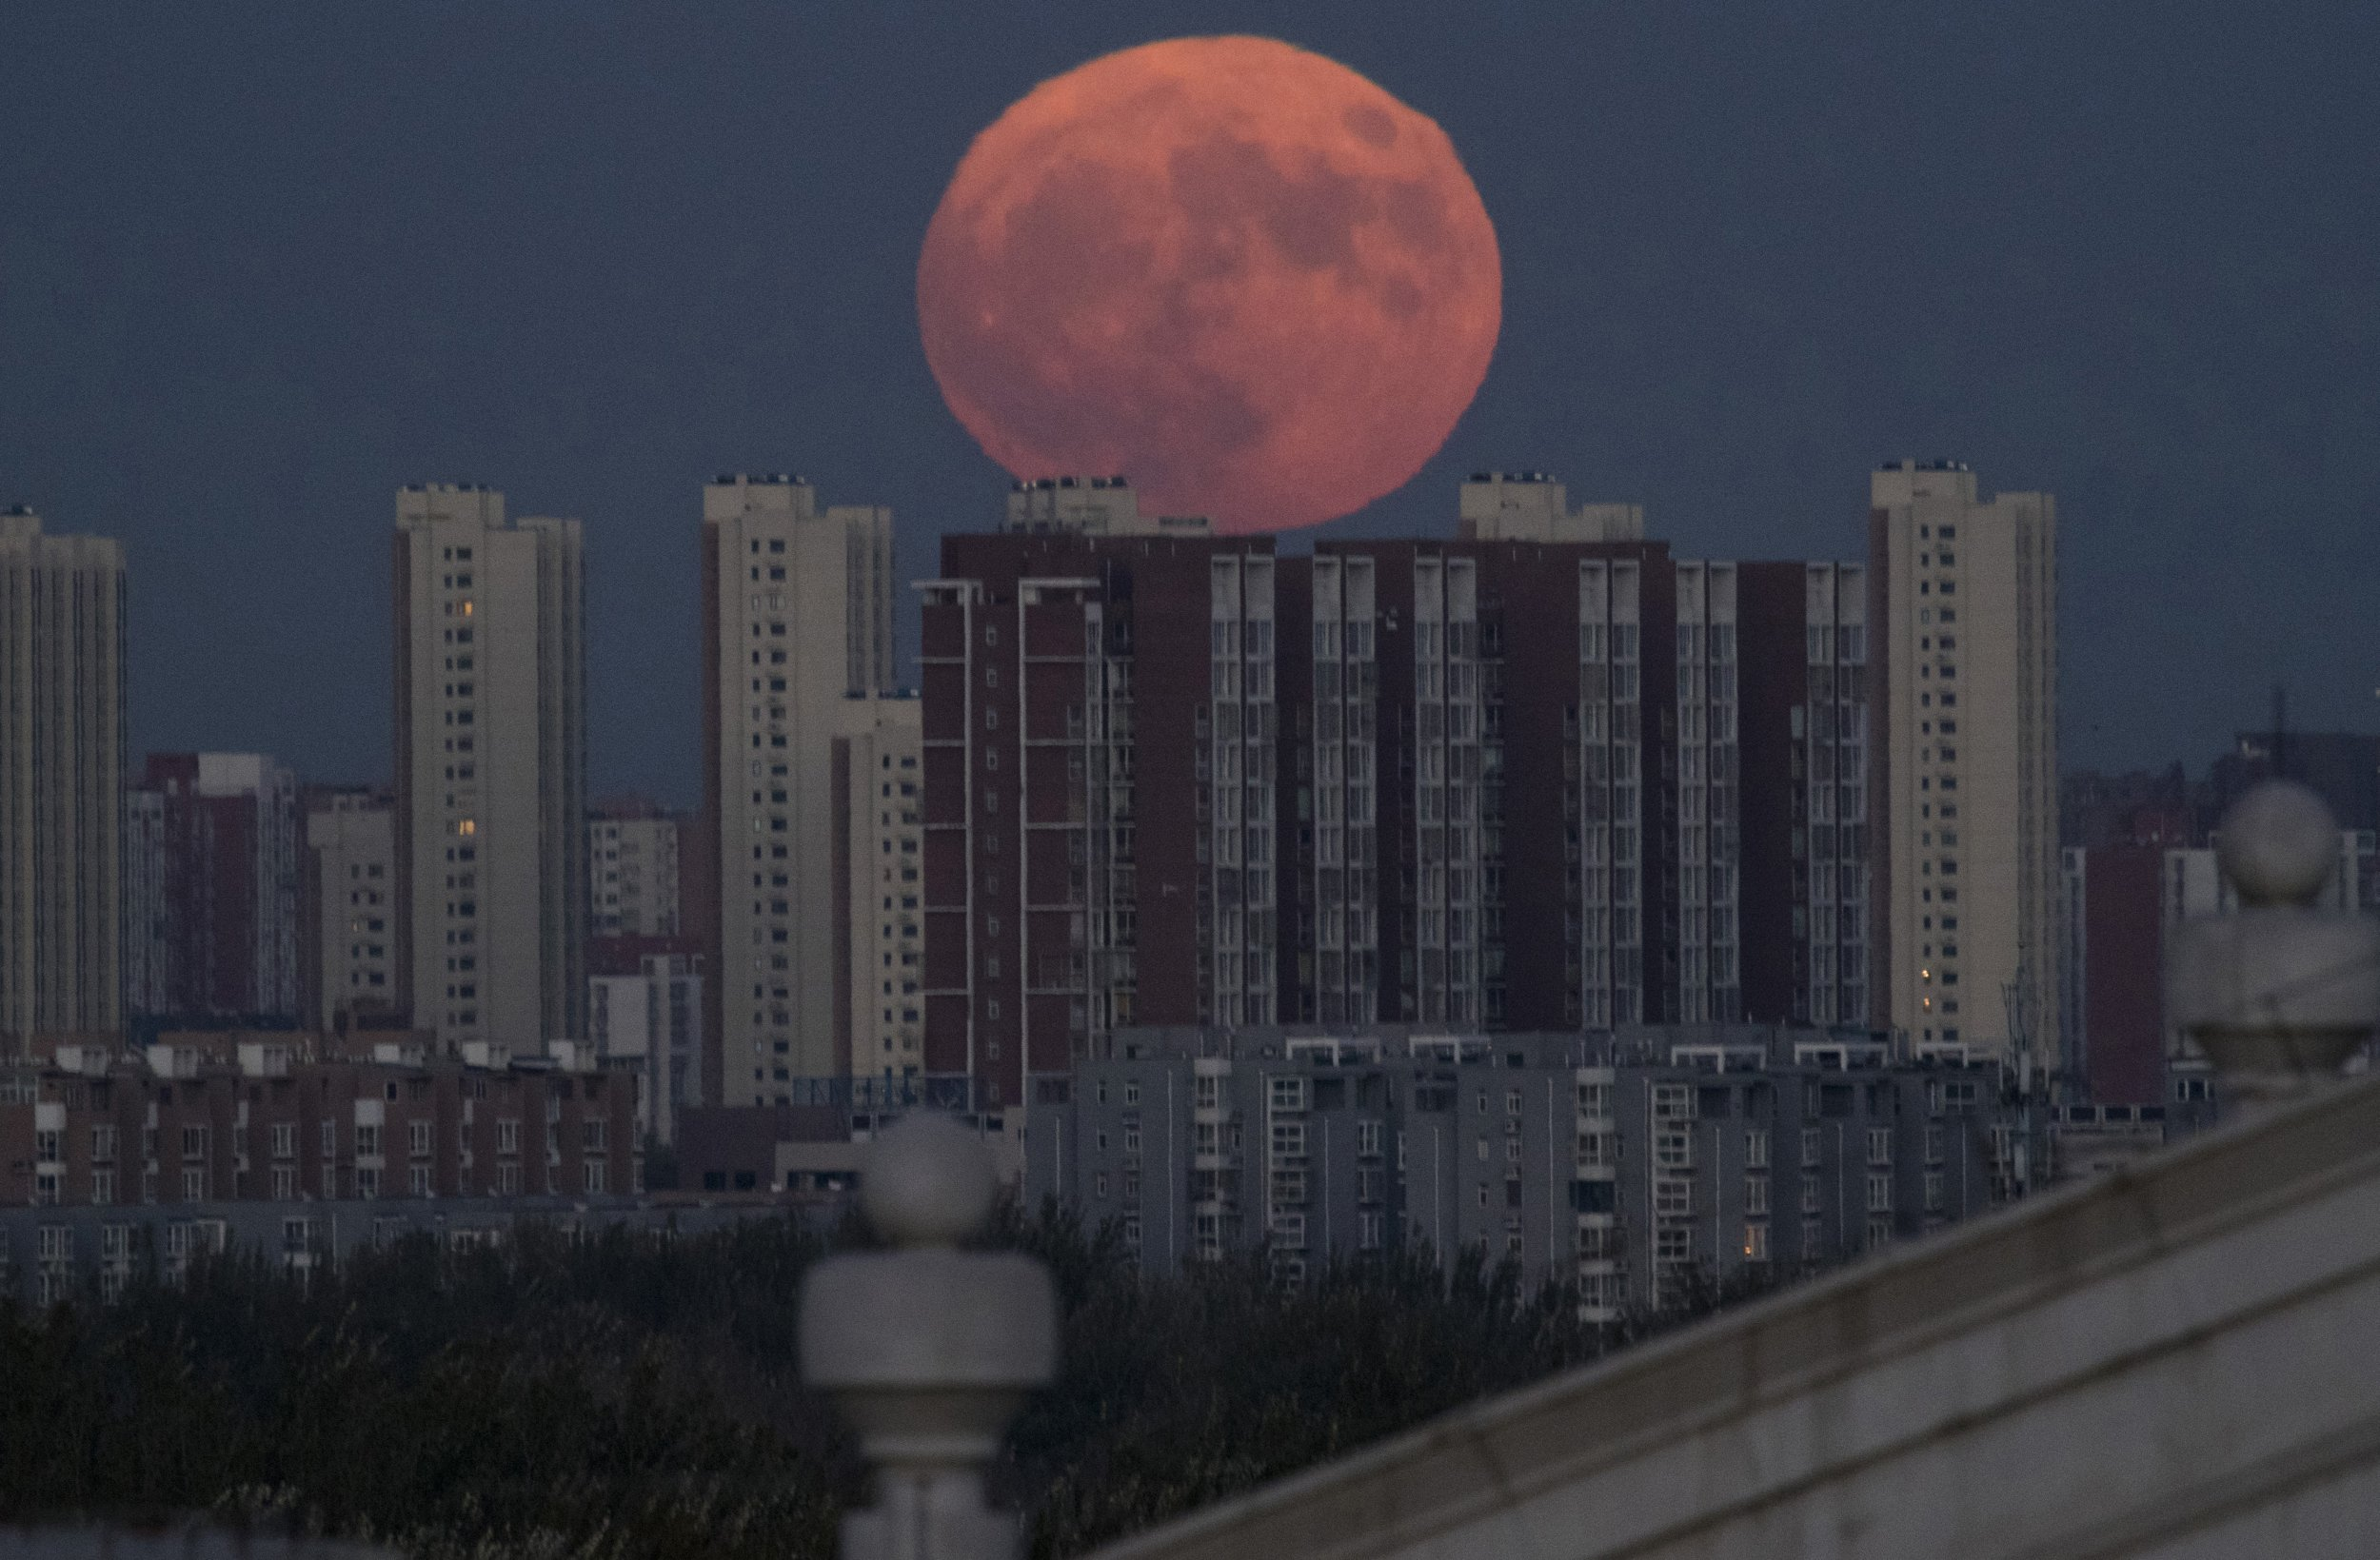 The moon rises from behind apartment buildings in Beijing, China, Monday, Nov. 14, 2016. The brightest moon in almost 69 years will be lighting up the sky this week in a treat for star watchers around the globe. (AP Photo/Ng Han Guan)